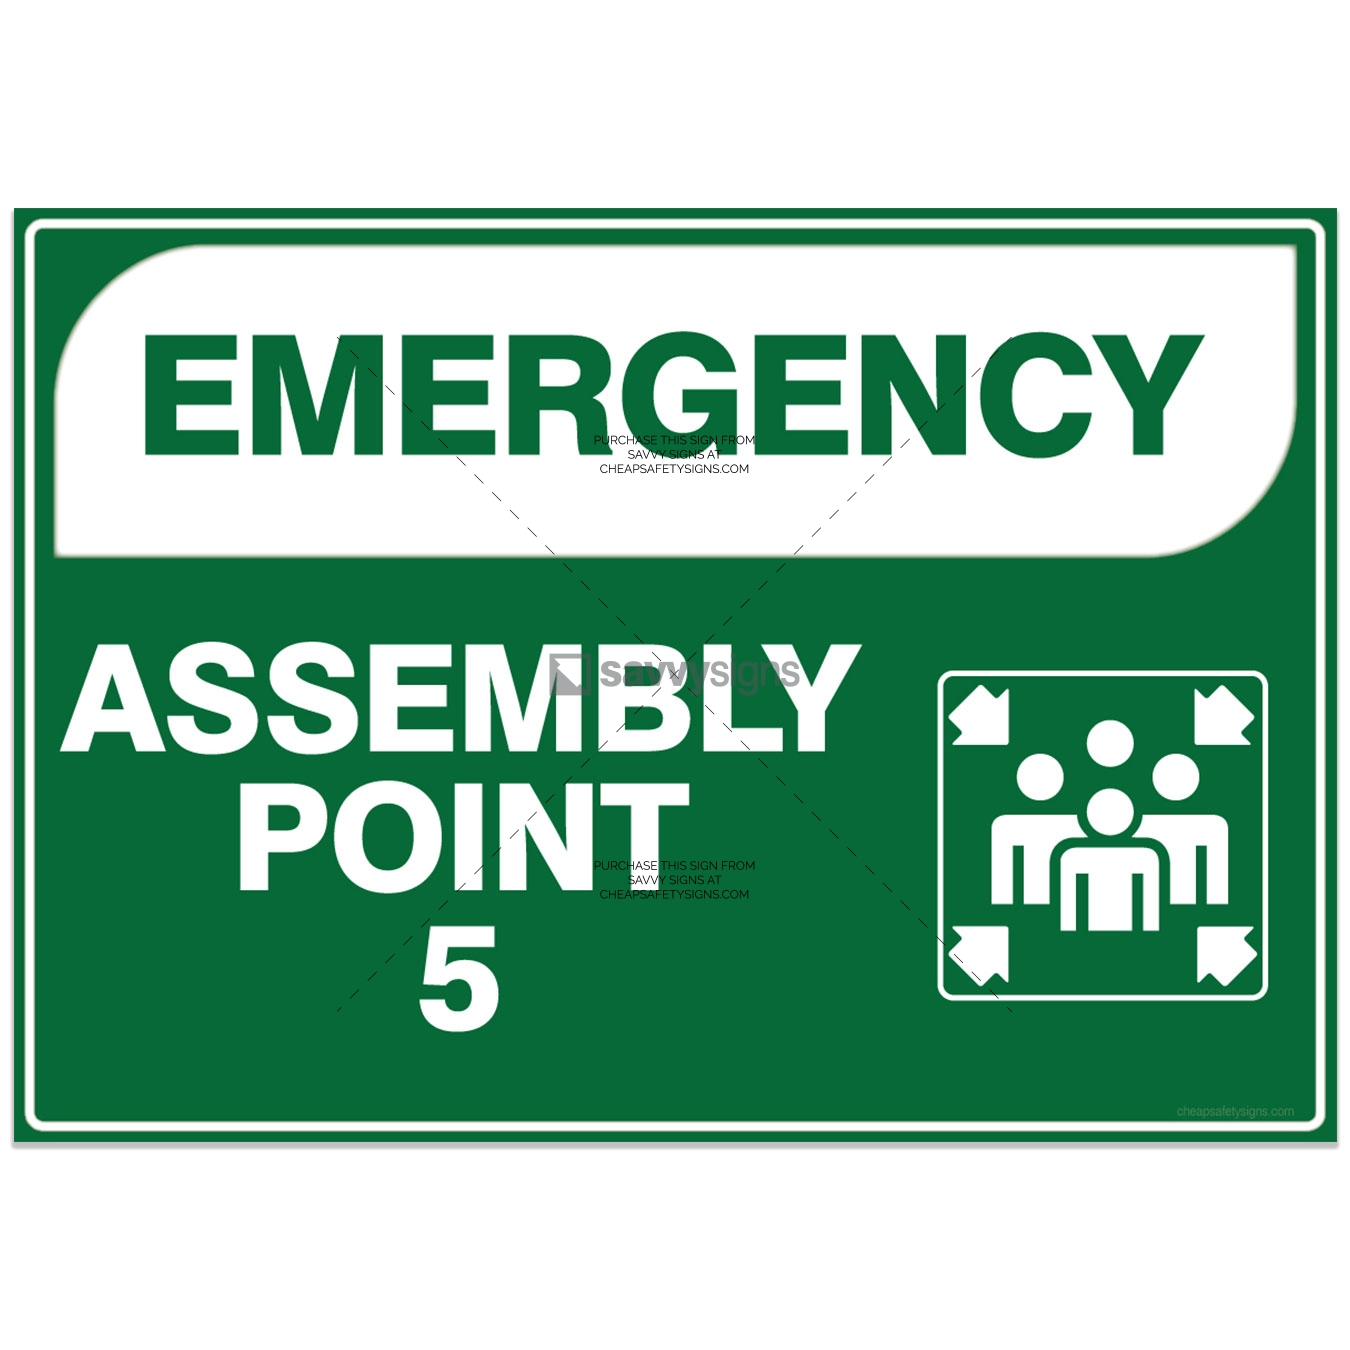 SSEME3007-EMERGENCY-Workplace-Safety-Signs_Savvy-Signs_v3